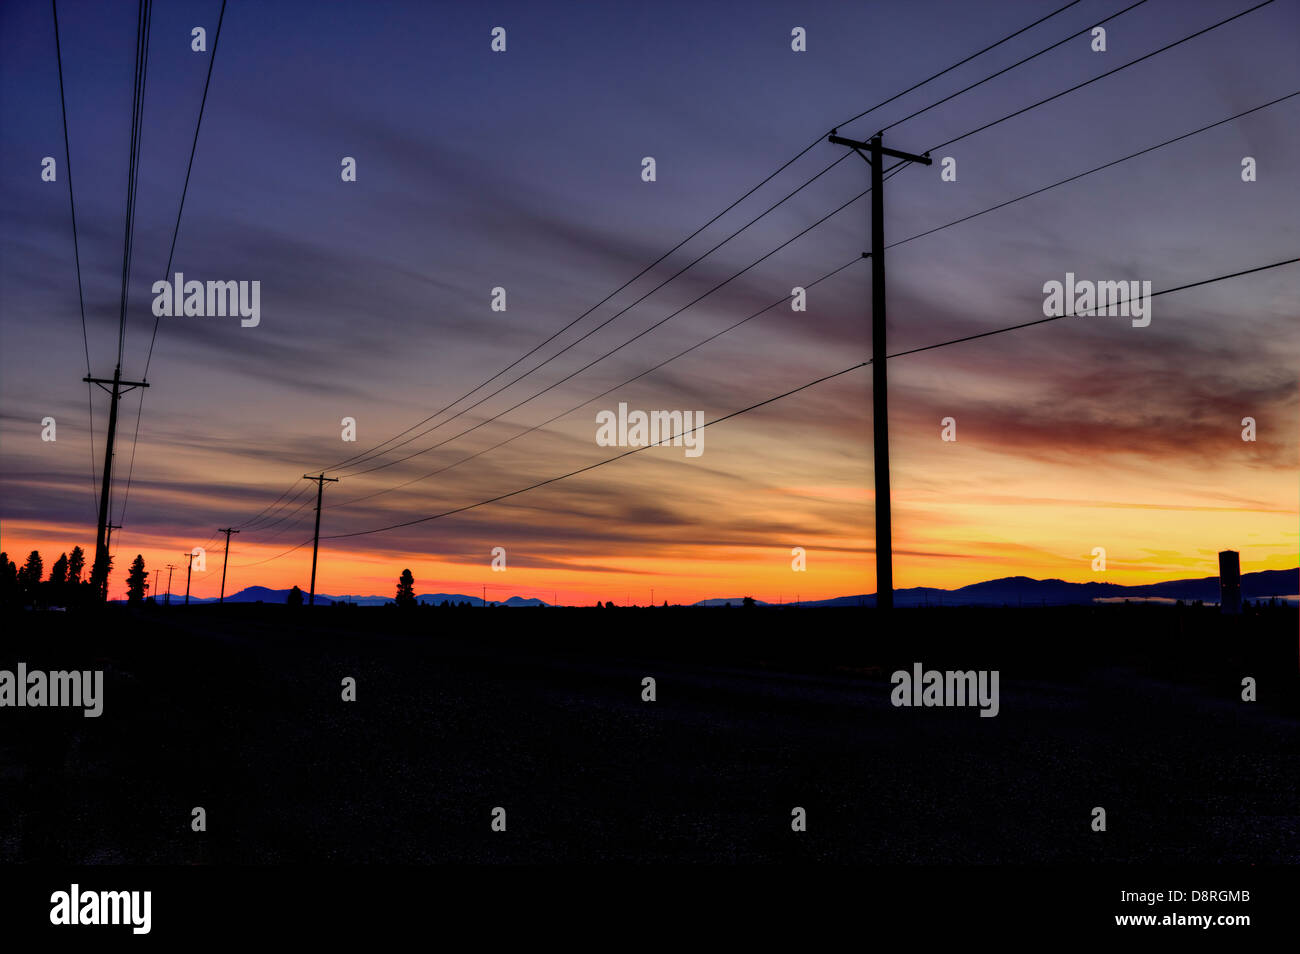 Power lines and poles are silhouetted against the sunrise sky. - Stock Image